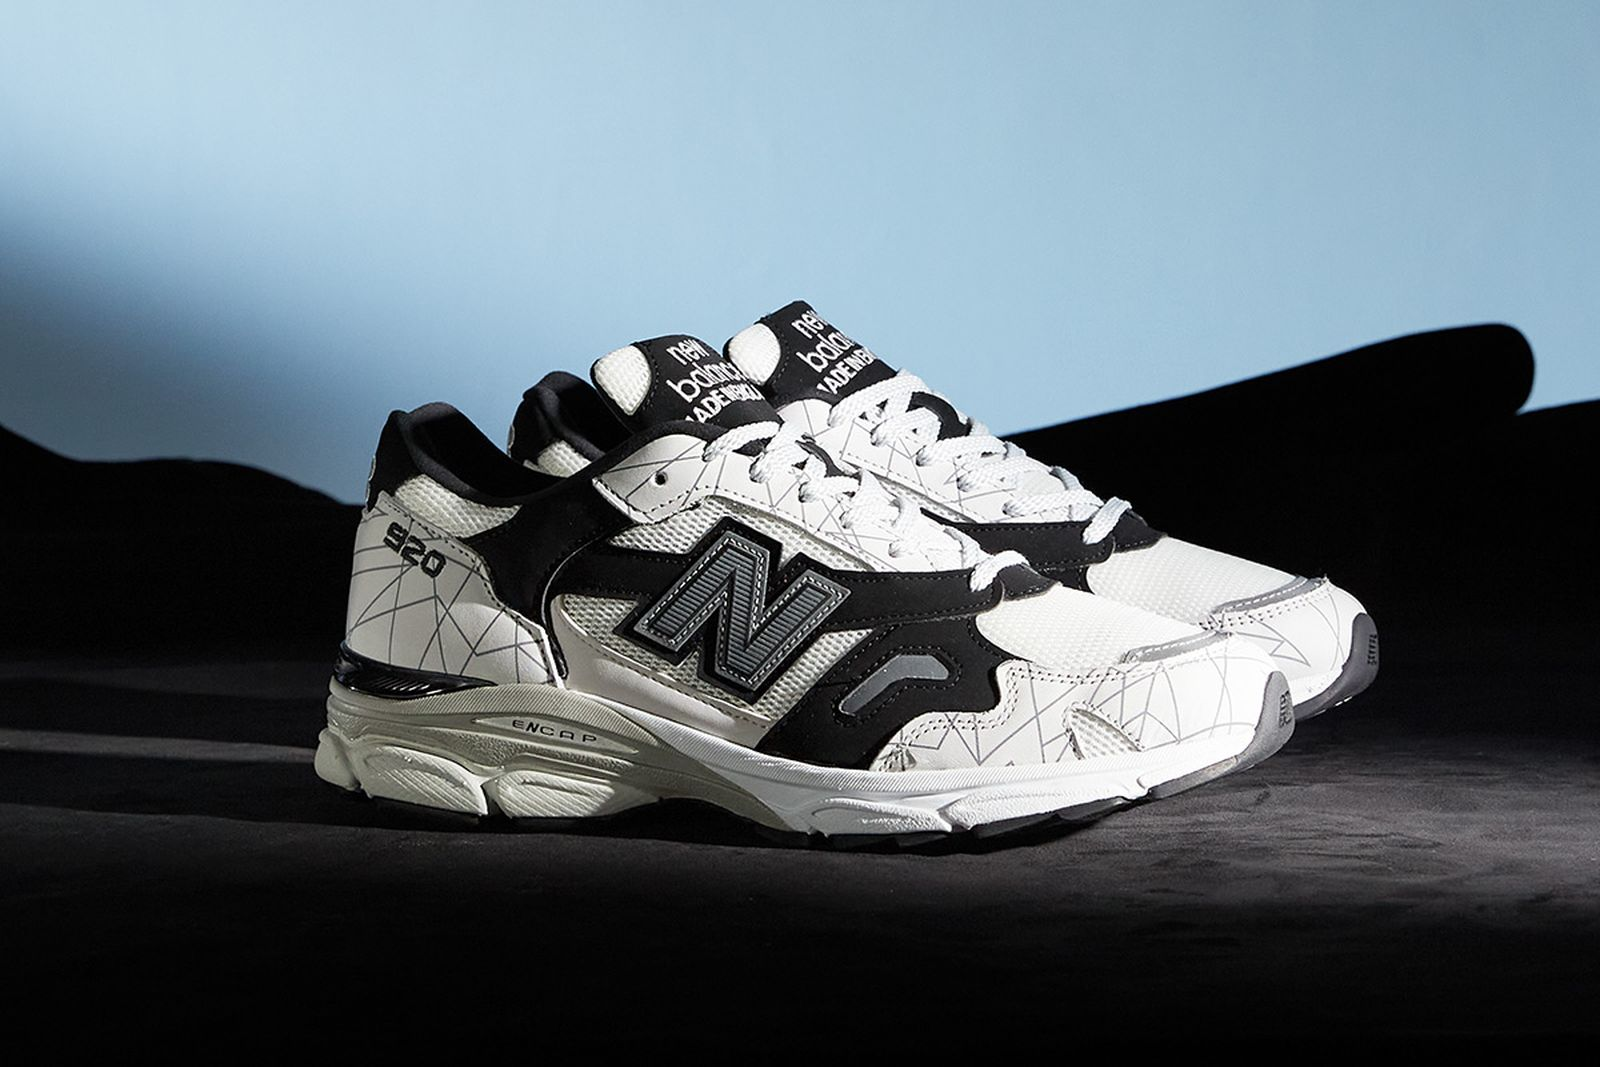 New Balance 920 product image in front of background